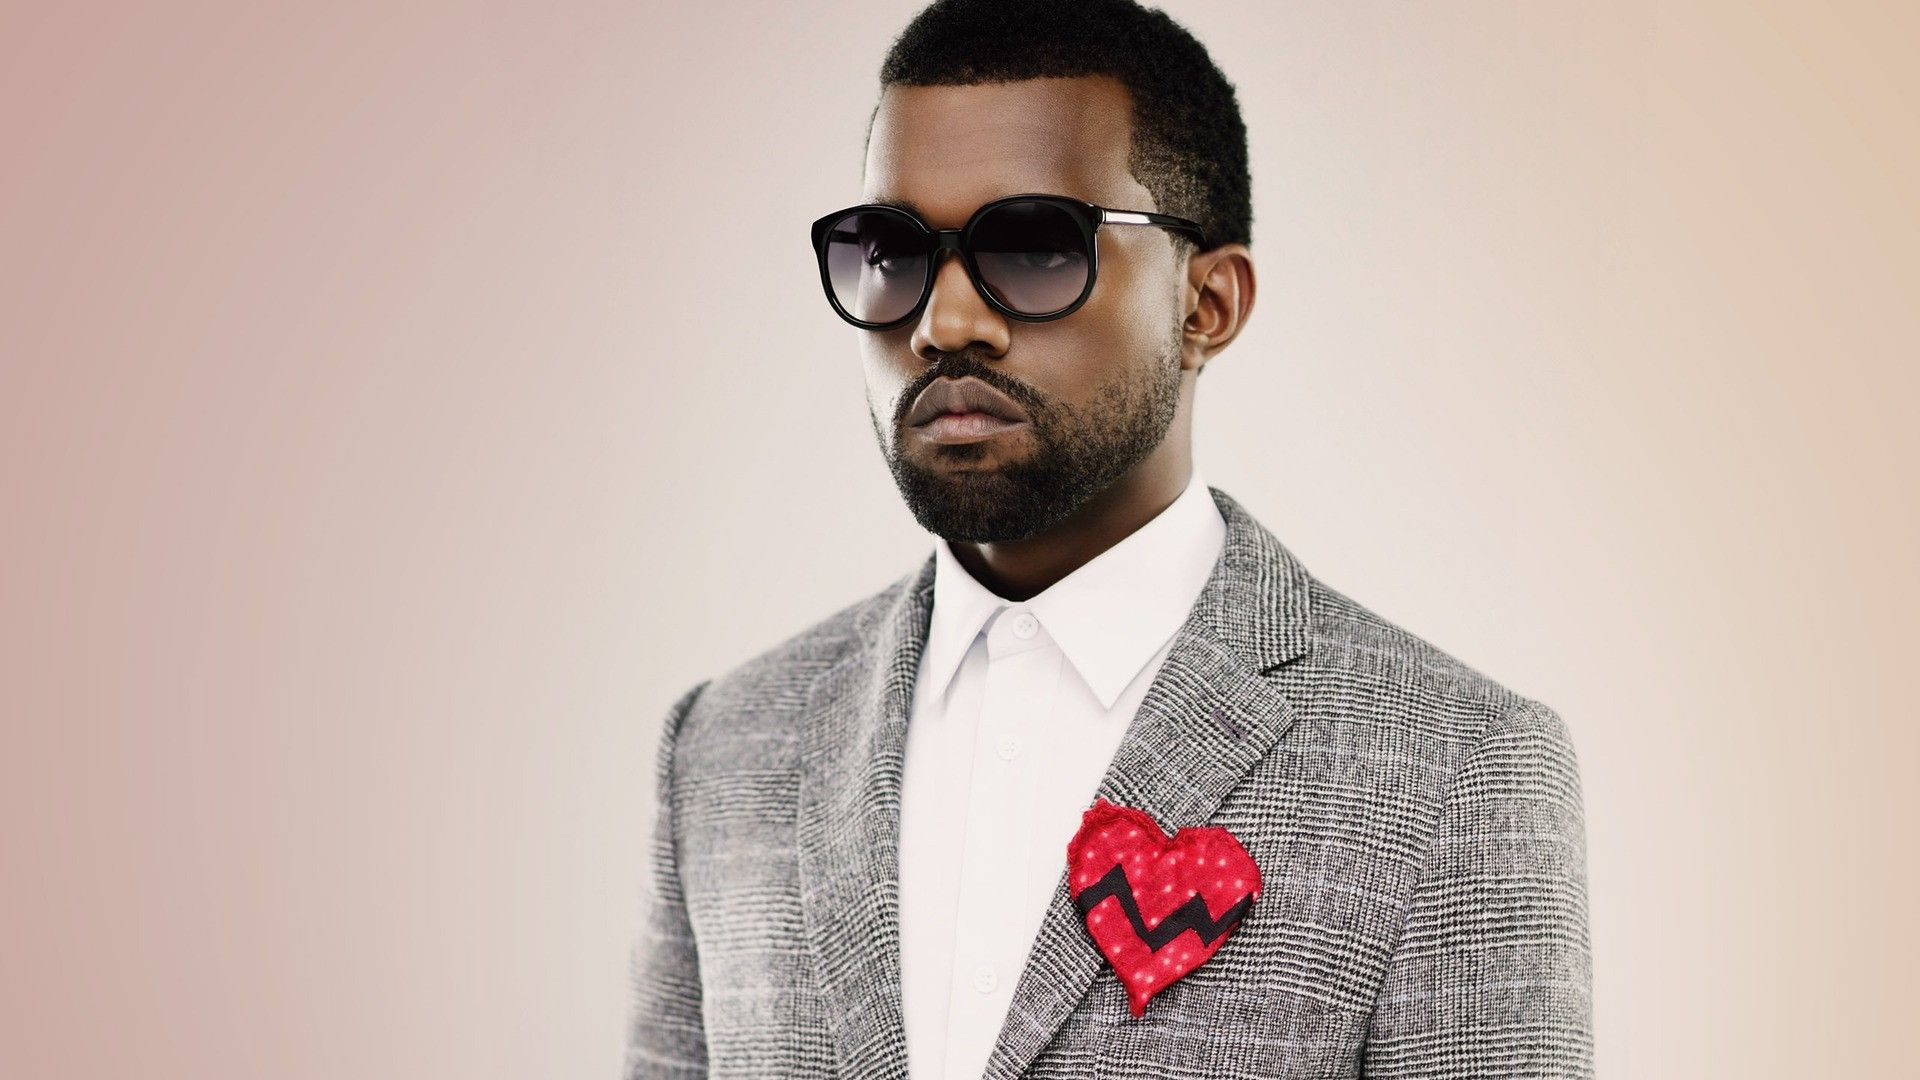 1920x1080 Kanye West HD Wallpapers and Backgrounds